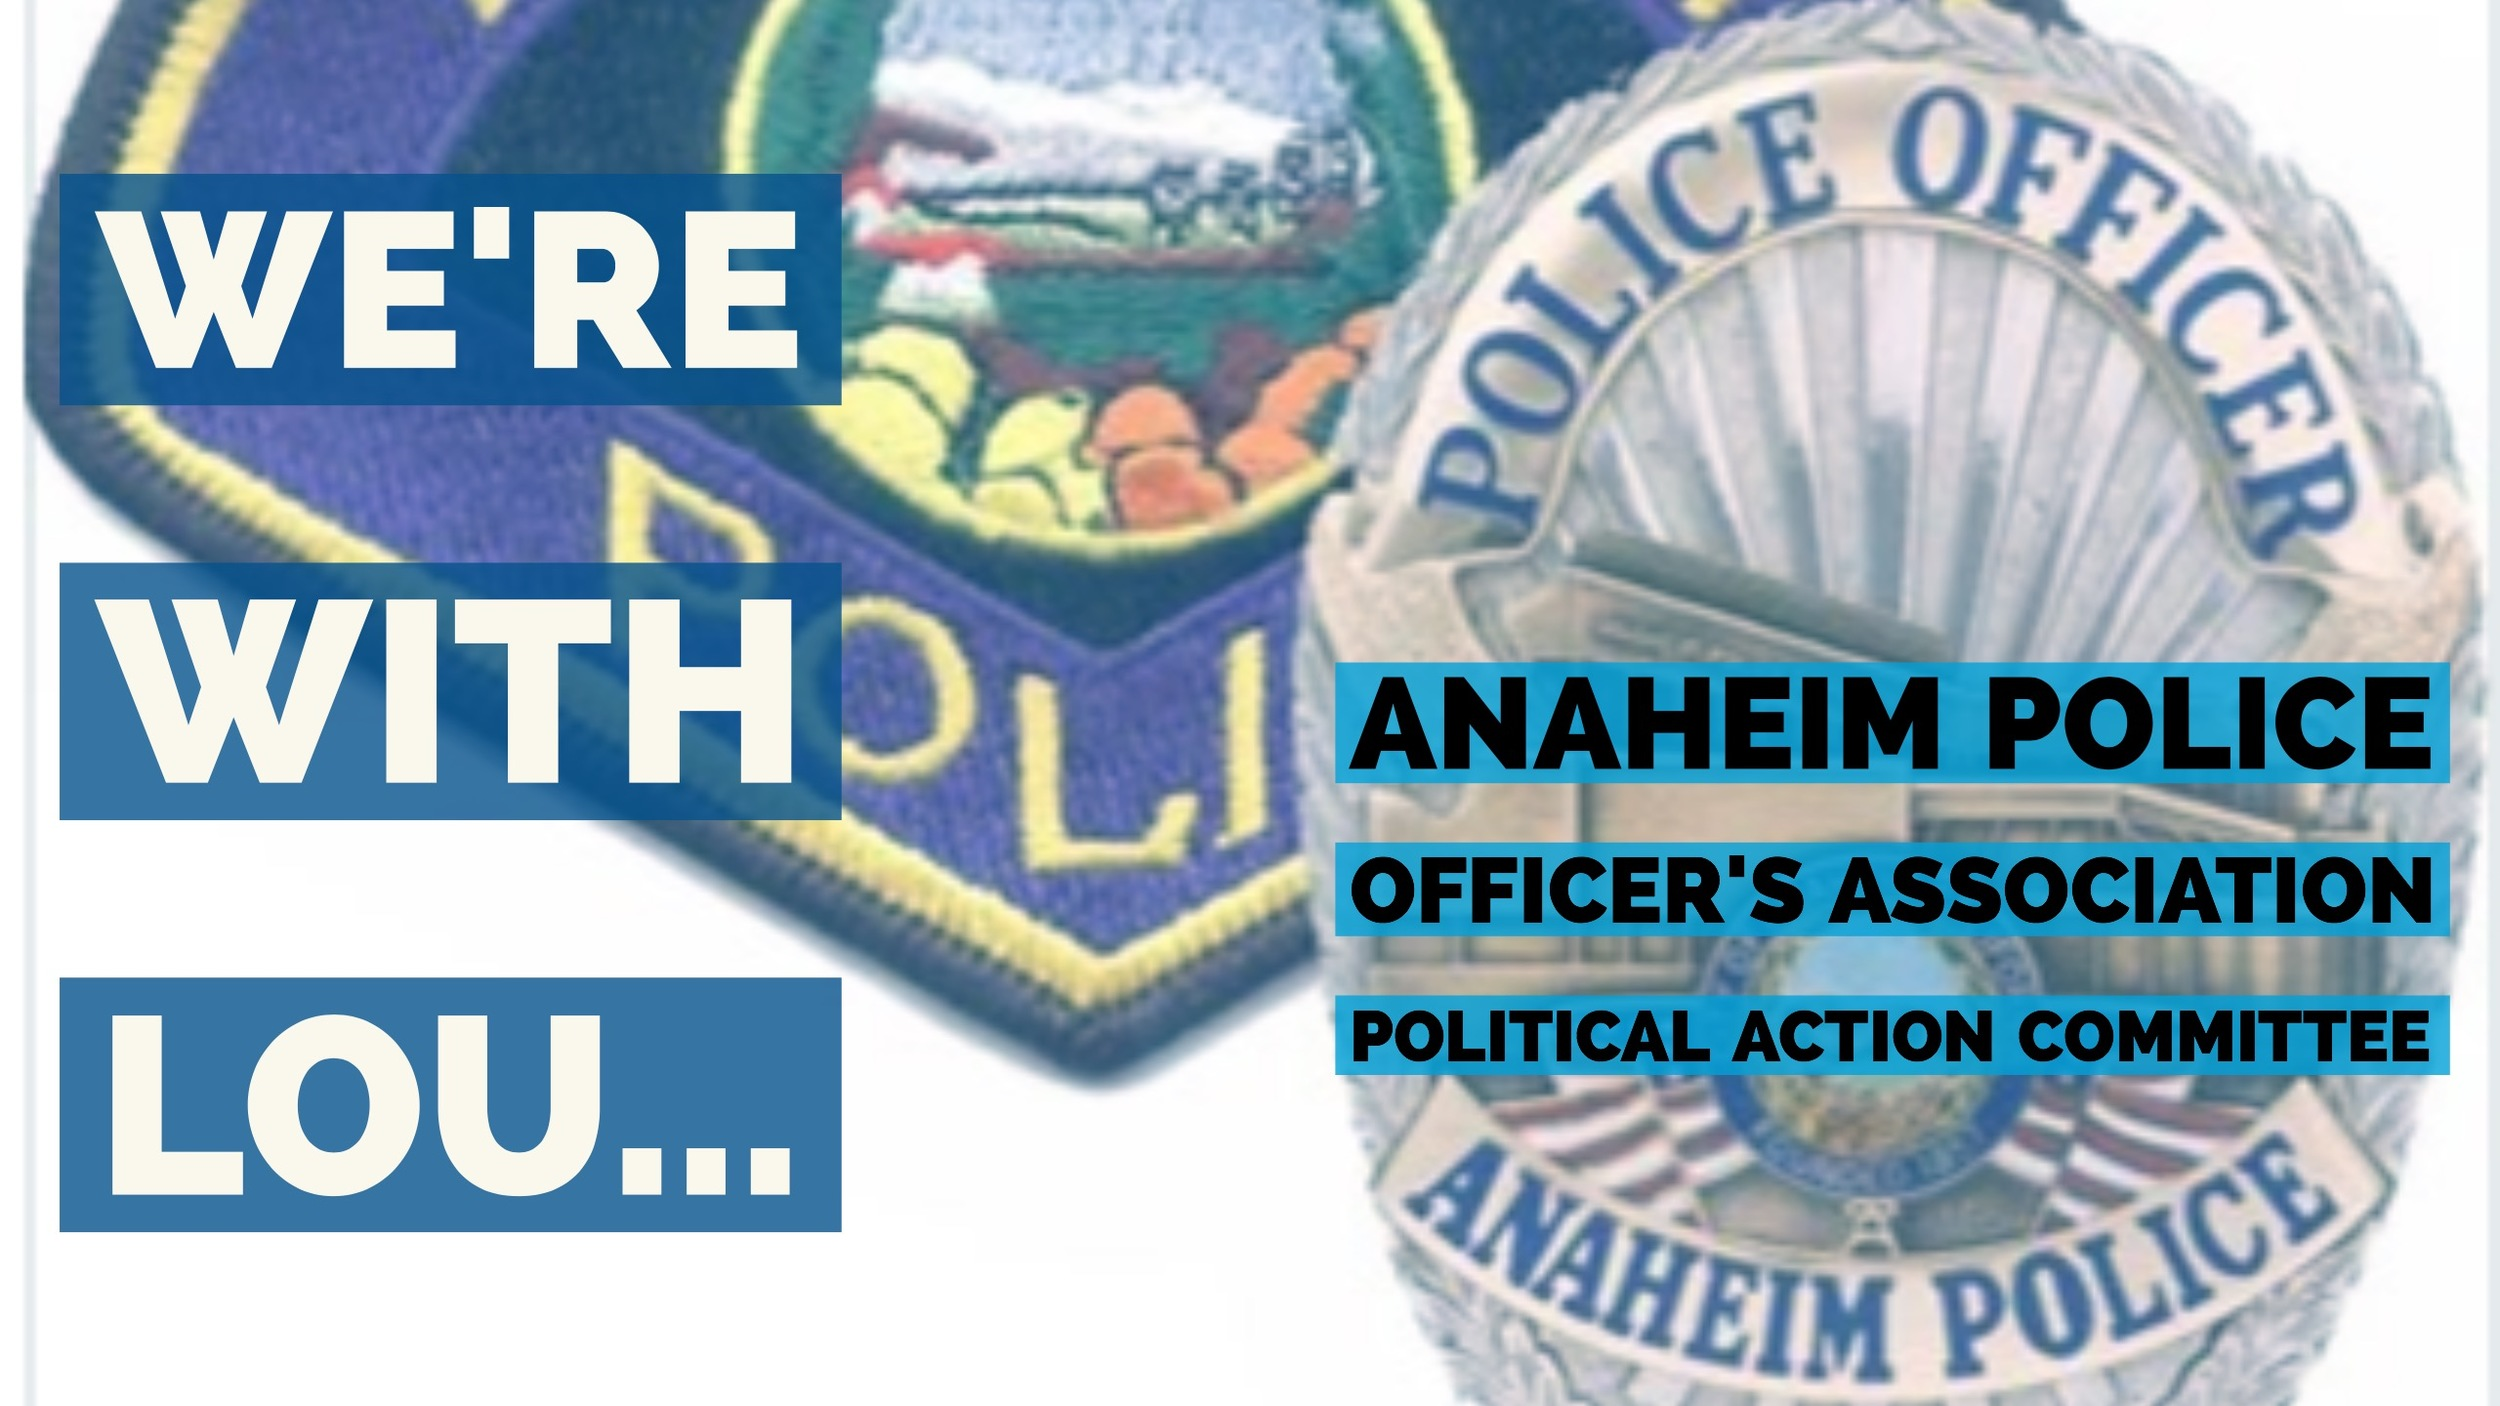 ED - ORG Anaheim Police Officer's Association.jpg